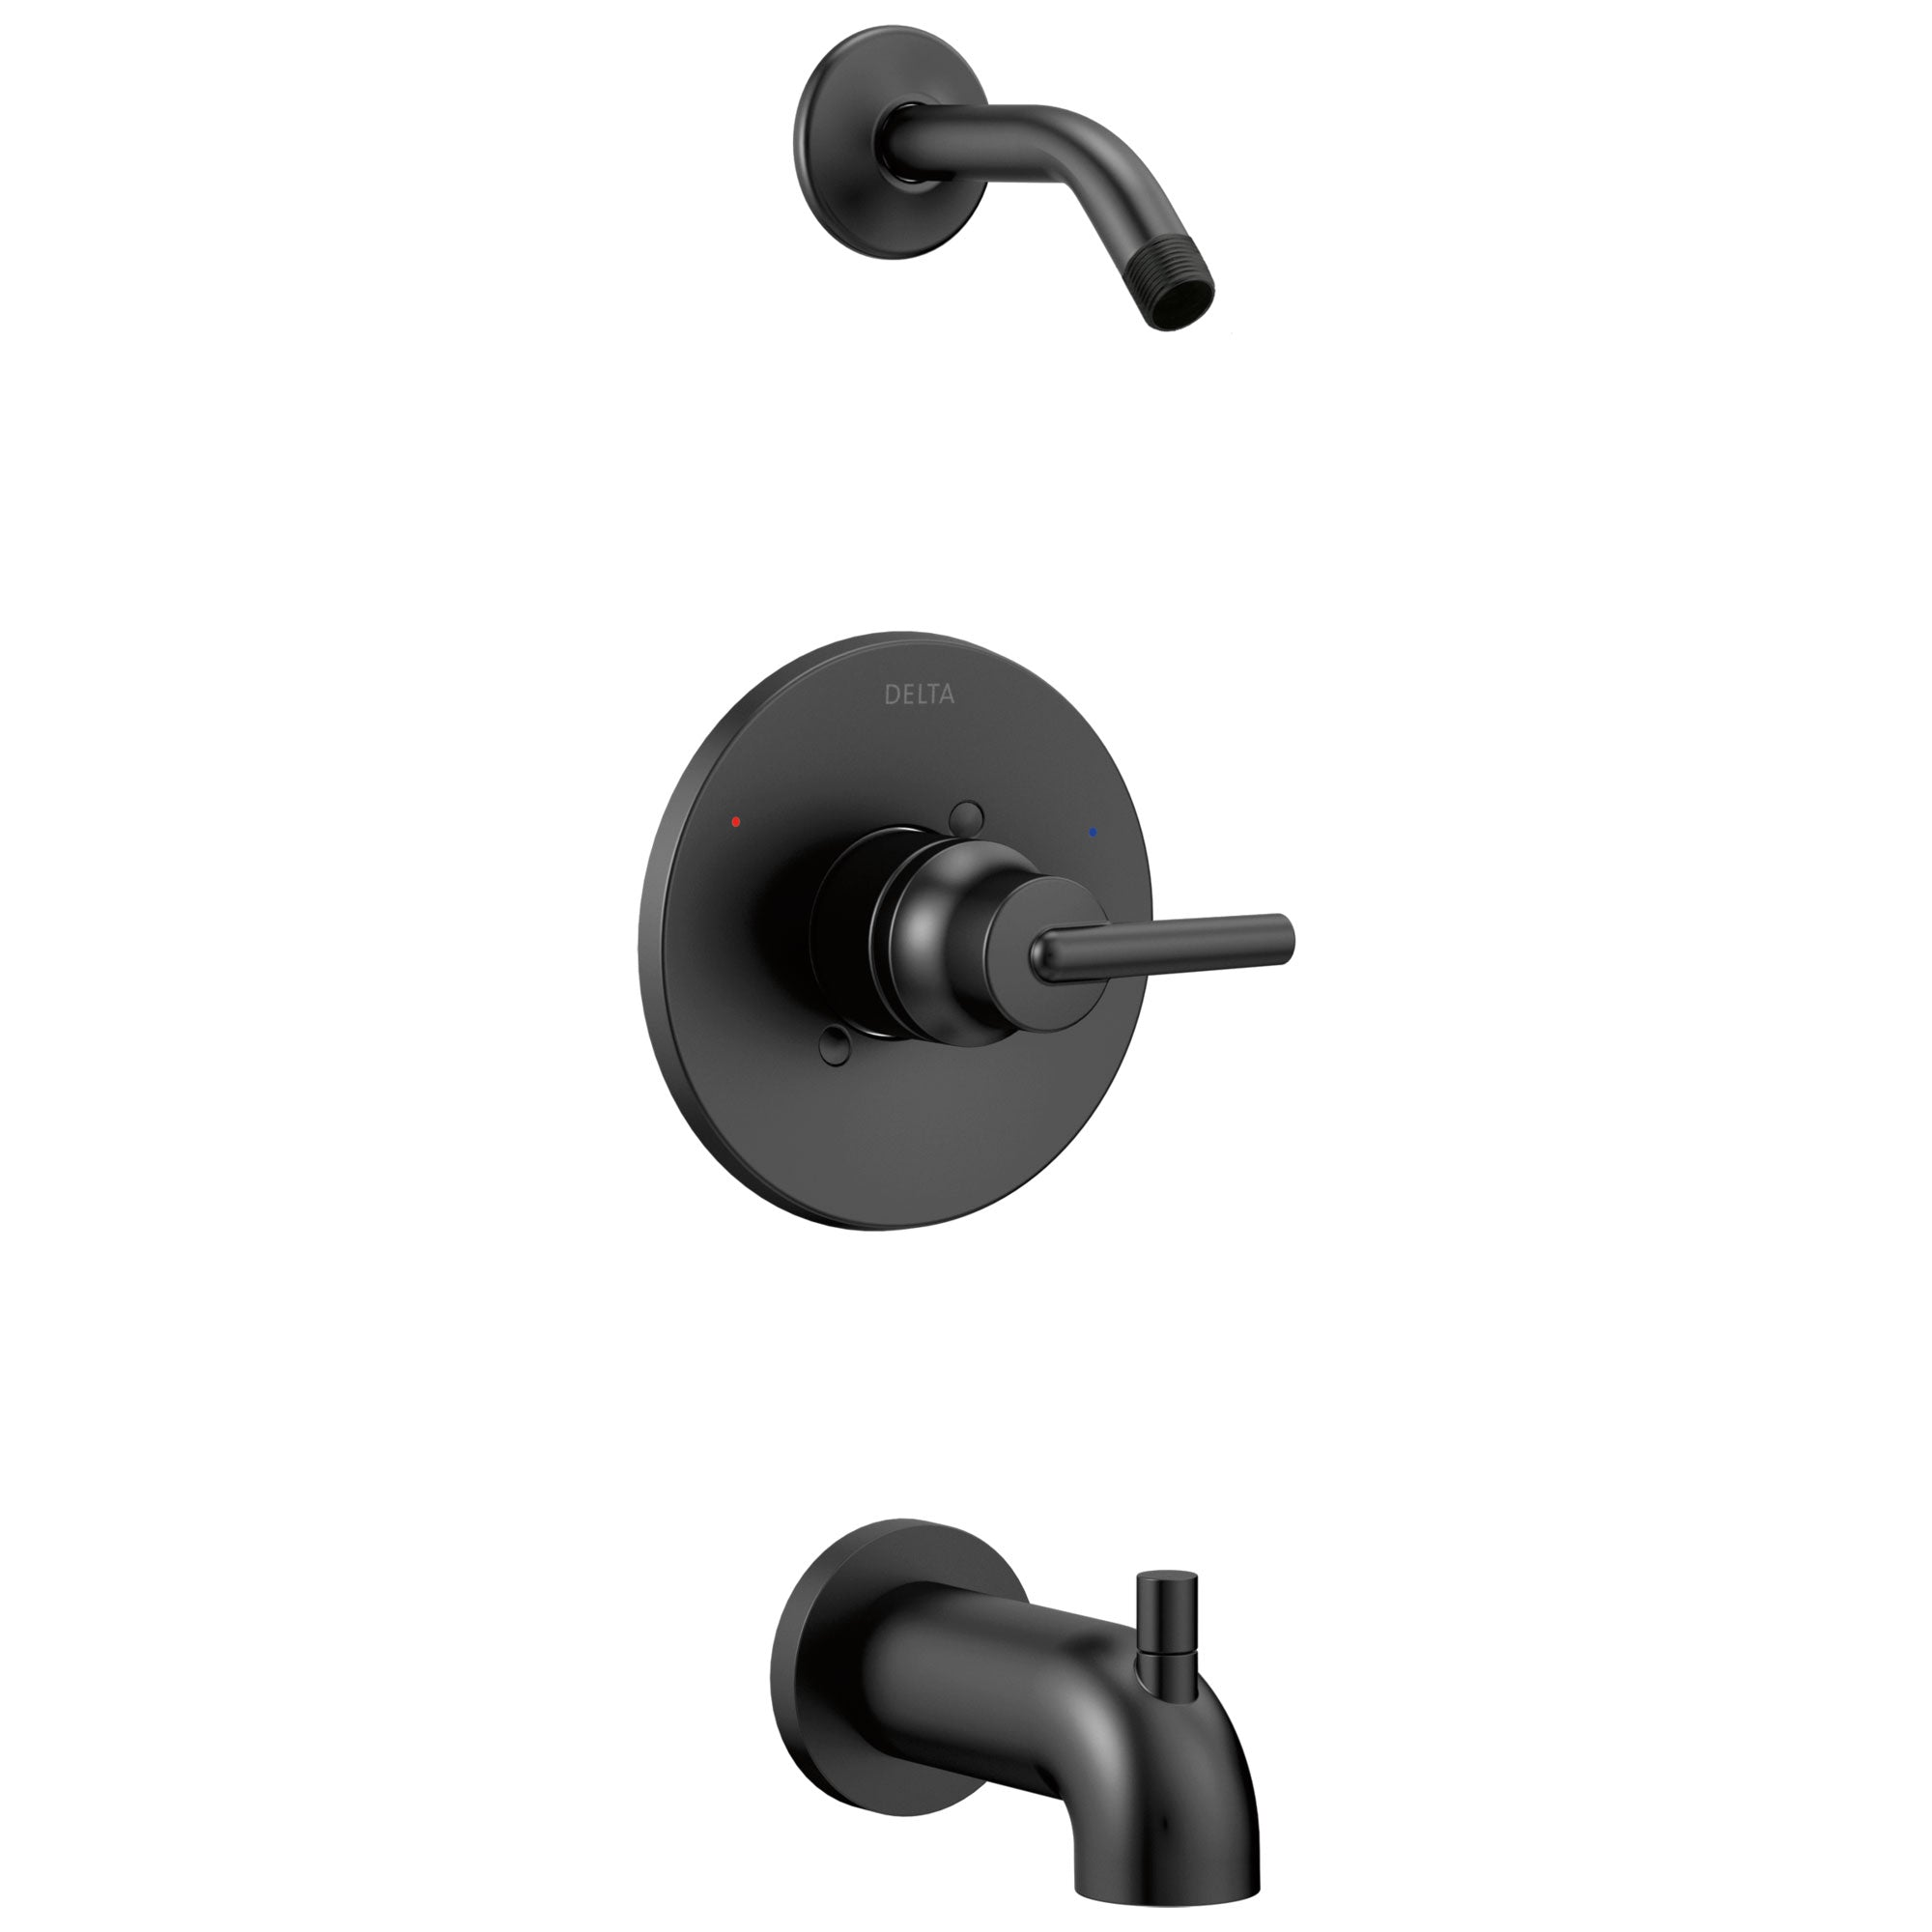 Delta Trinsic Collection Matte Black Finish Cylindrical Lever Tub and Shower Combination Faucet Trim - Less Showerhead (Requires Valve) DT14459BLLHD